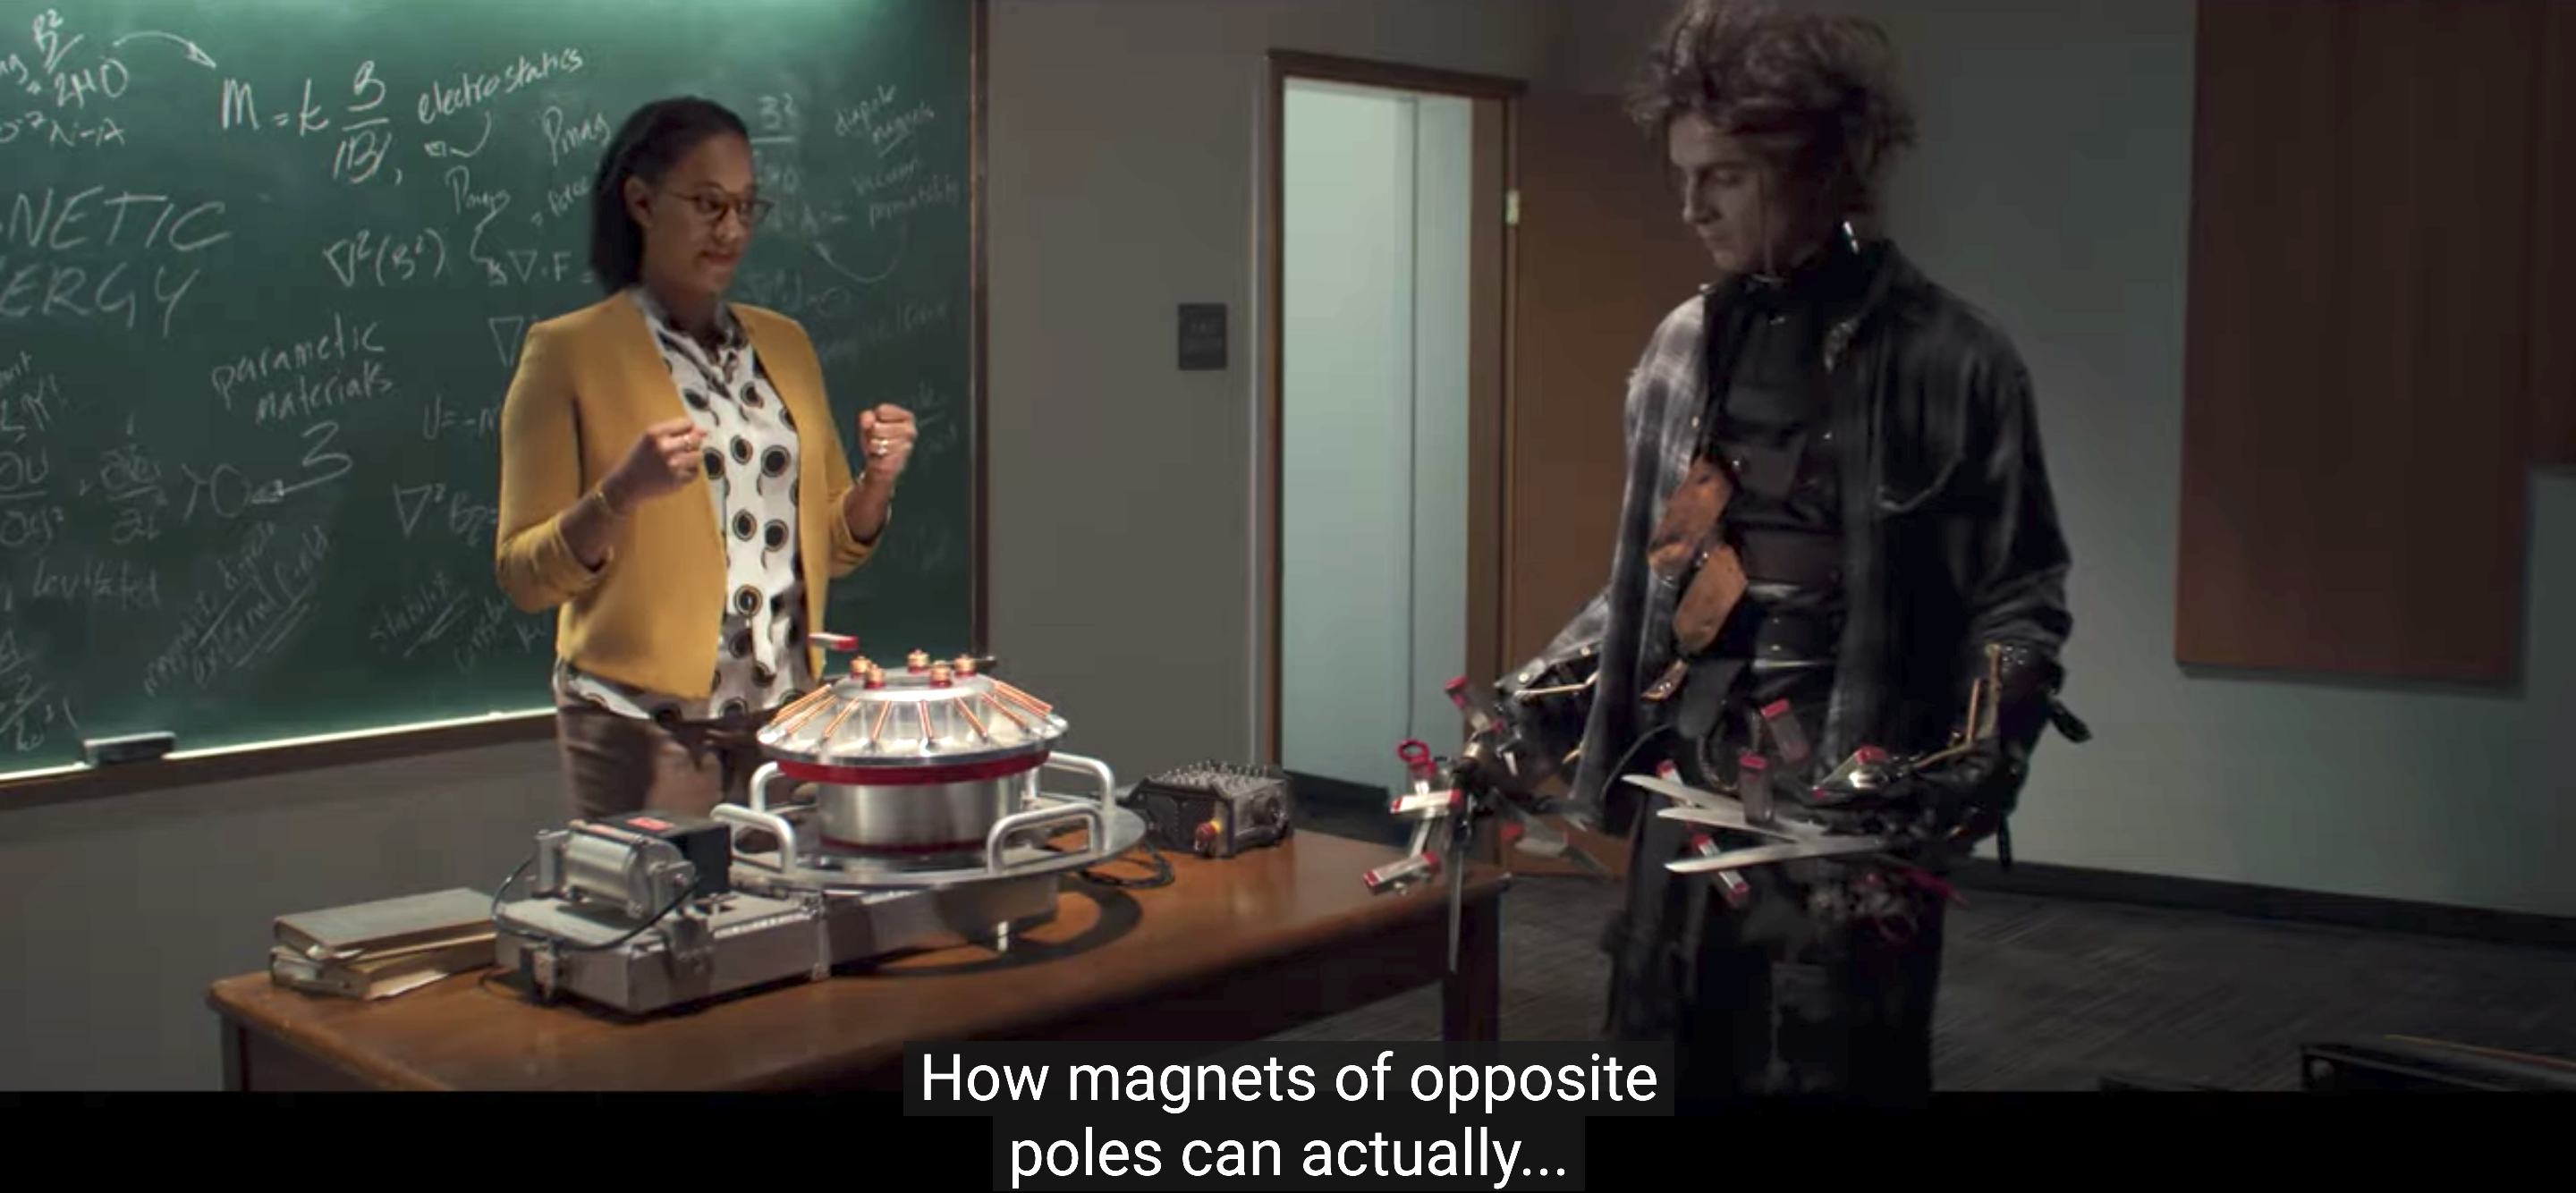 Edgar standing in a classroom with magnets attached to his scissorhands